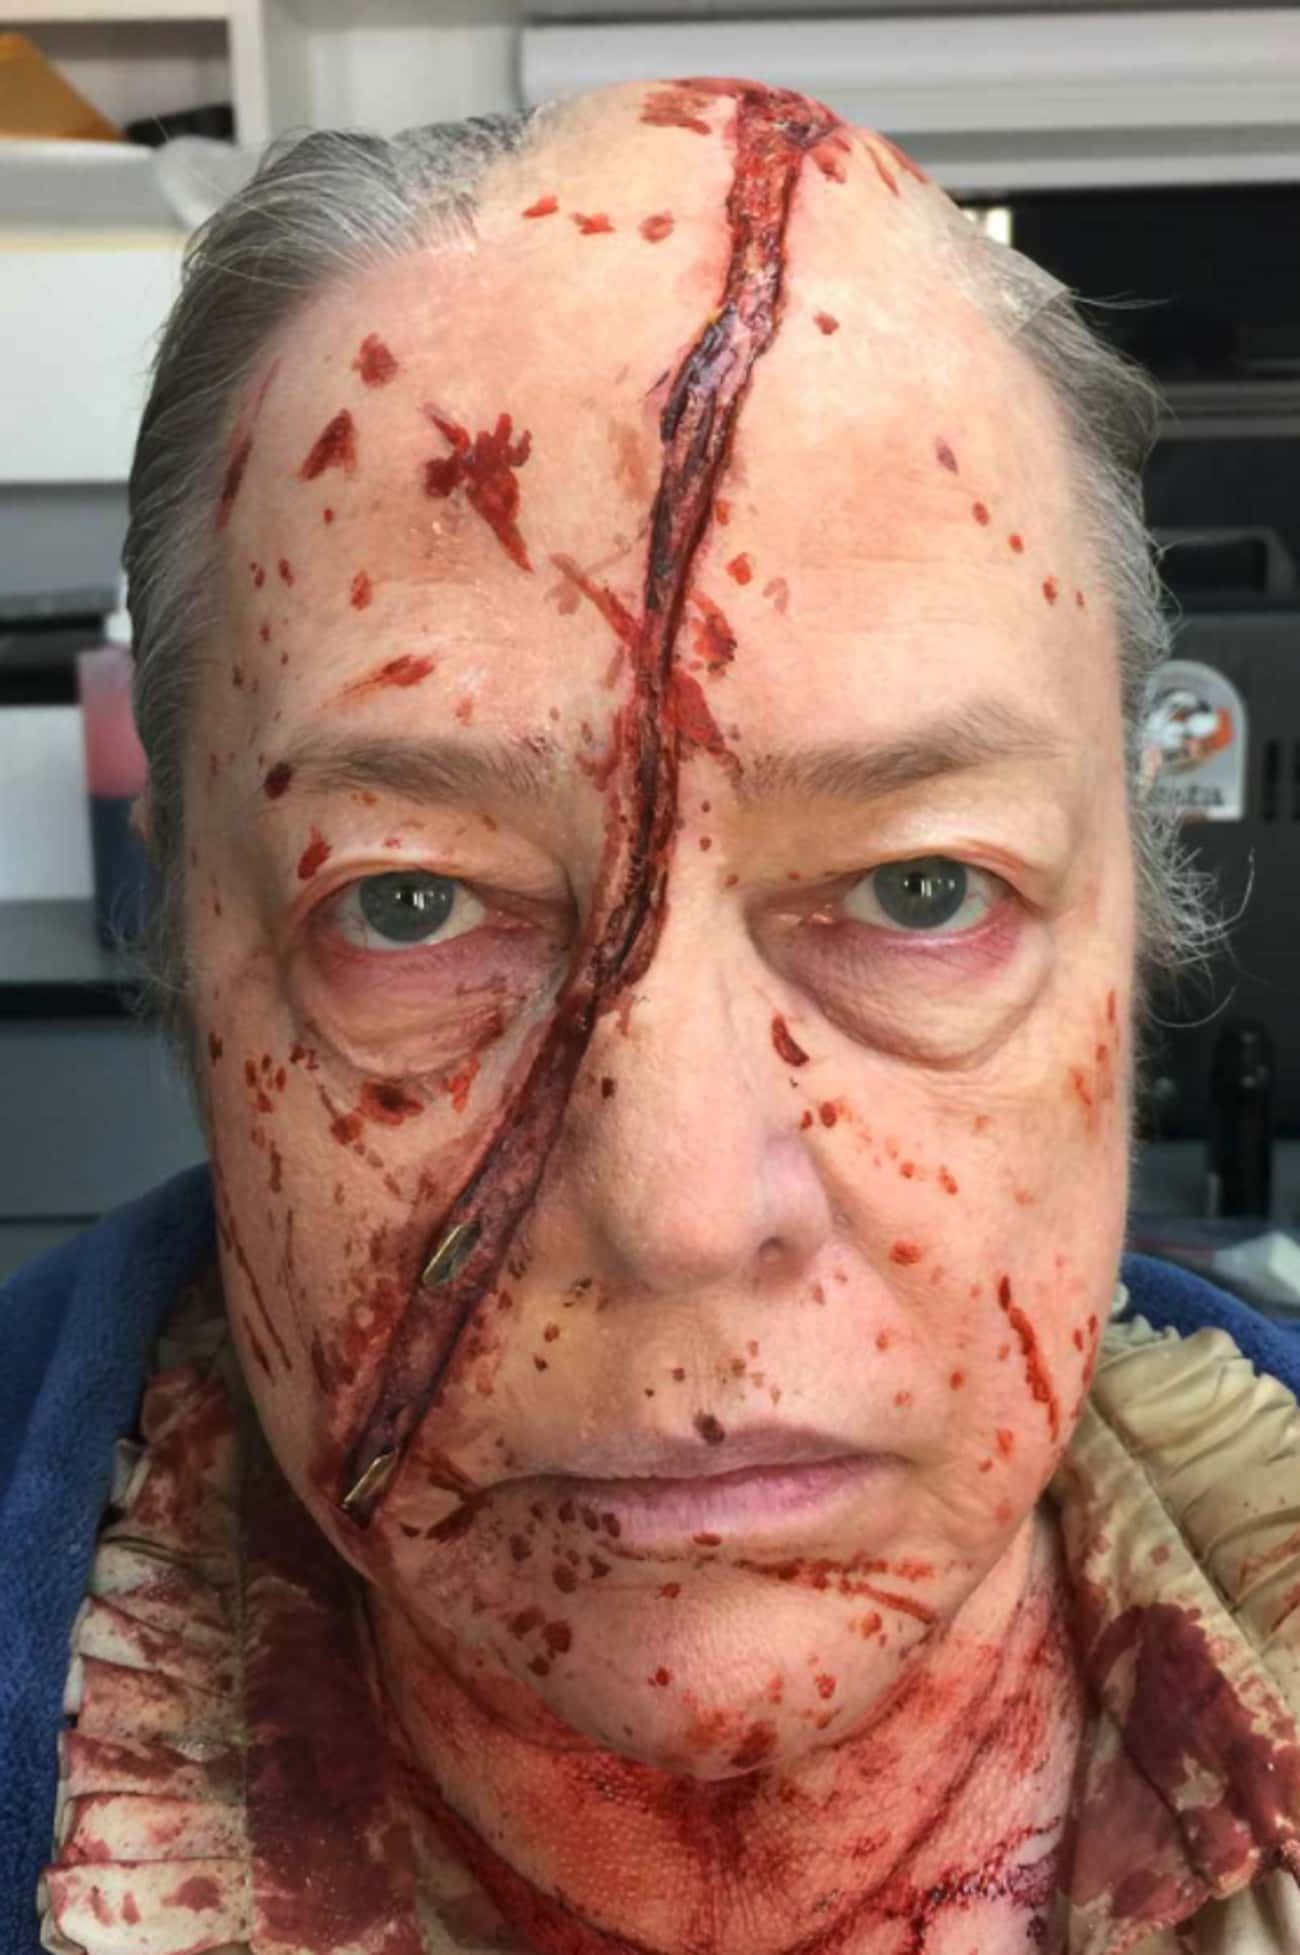 Kathy Bates Plays An Actor Pla is listed (or ranked) 3 on the list Behind The Scenes Photos From American Horror Story You've Probably Never Seen Before